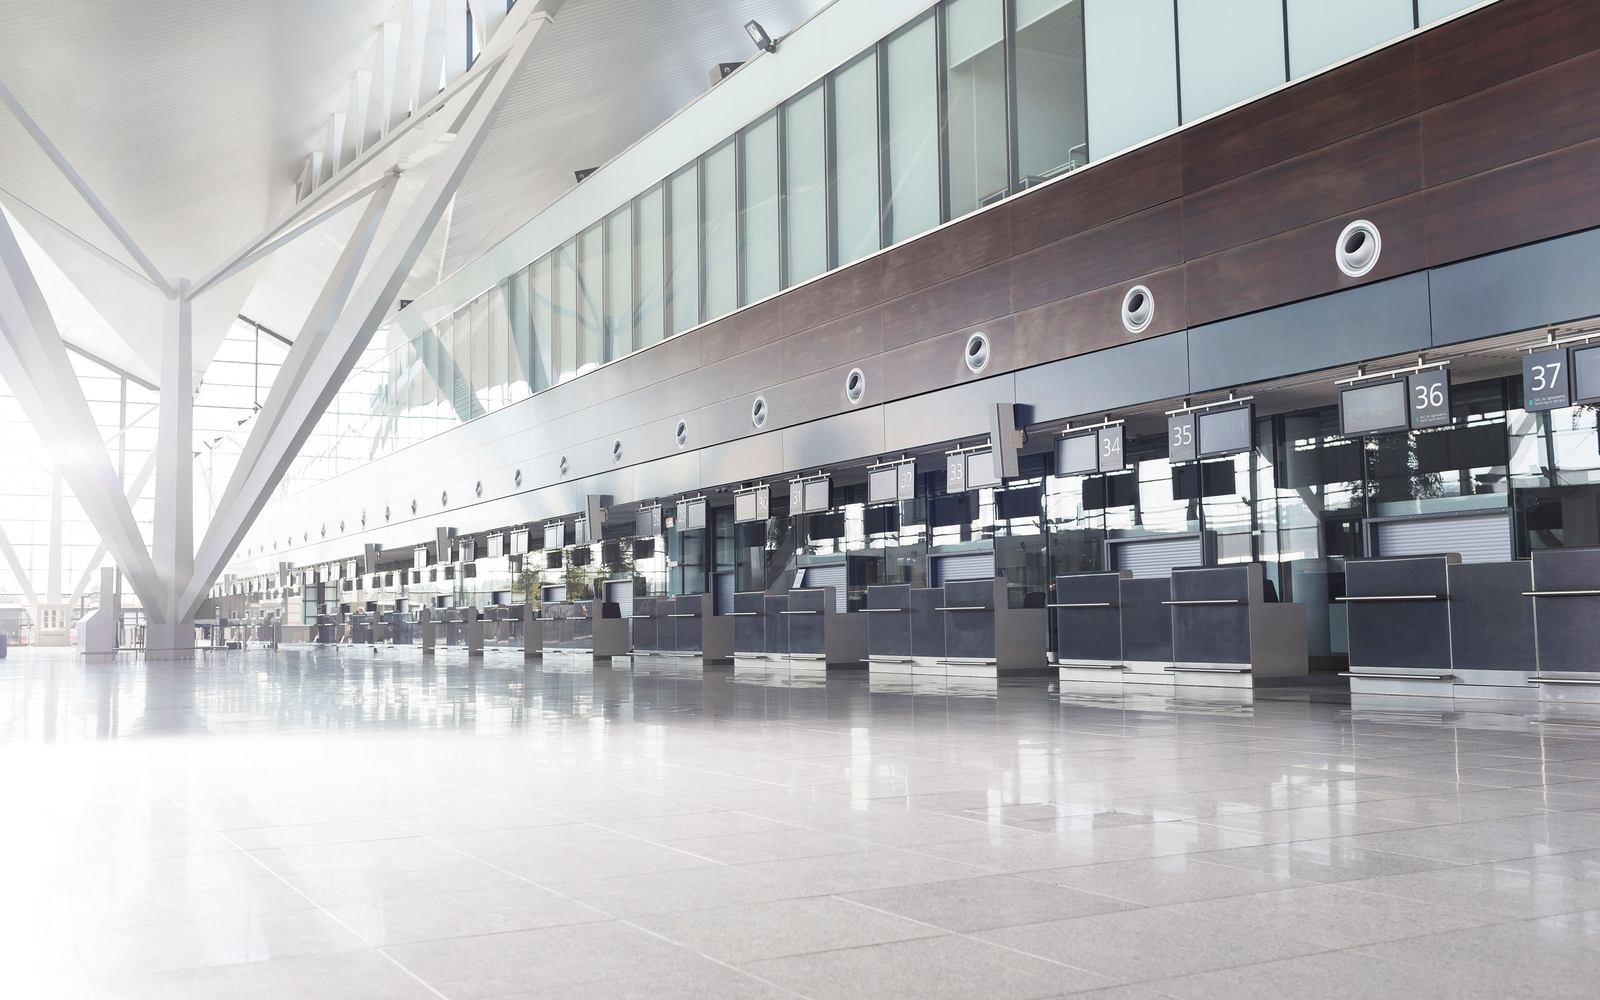 Five Ways to Make Your Airport Experience as Painless as Possible